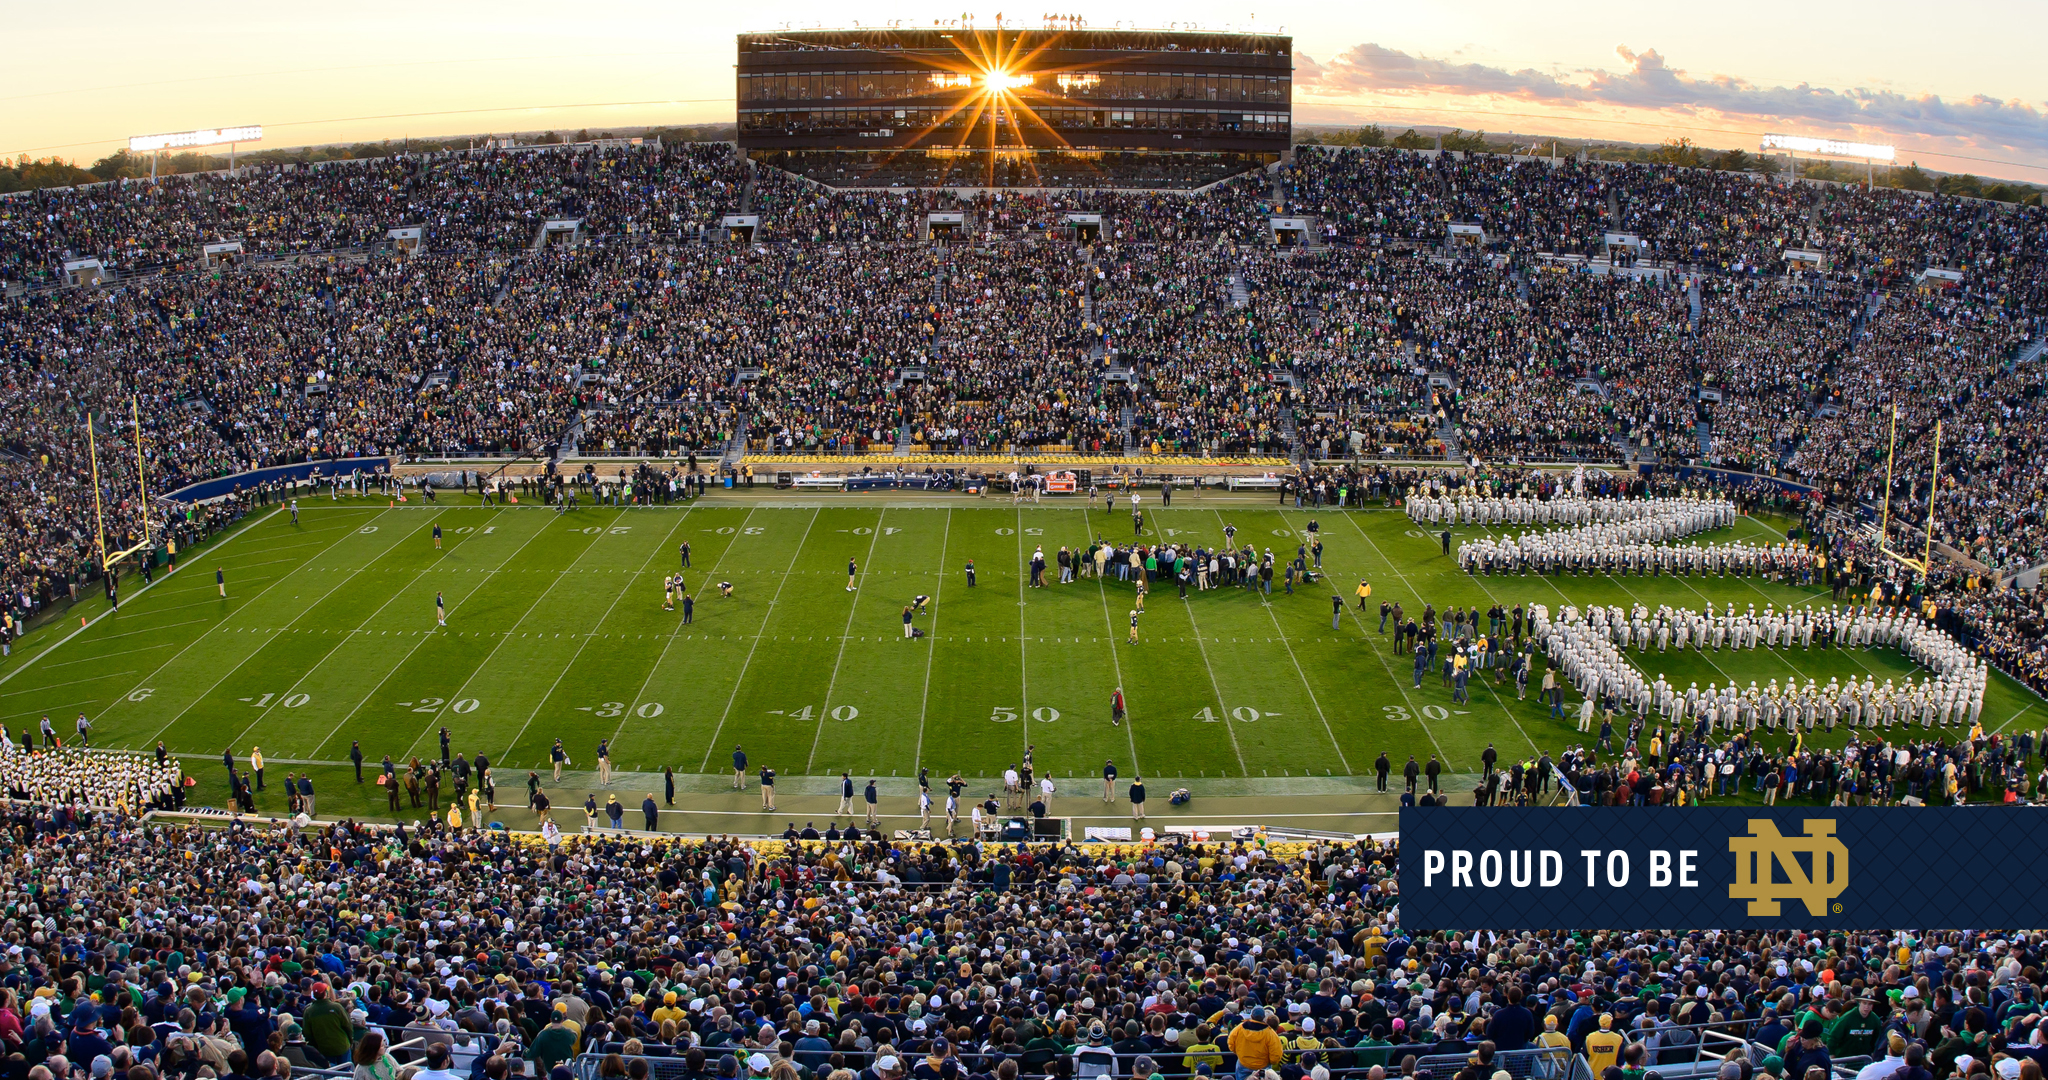 Wallpapers Proud to Be ND University of Notre Dame 2048x1080